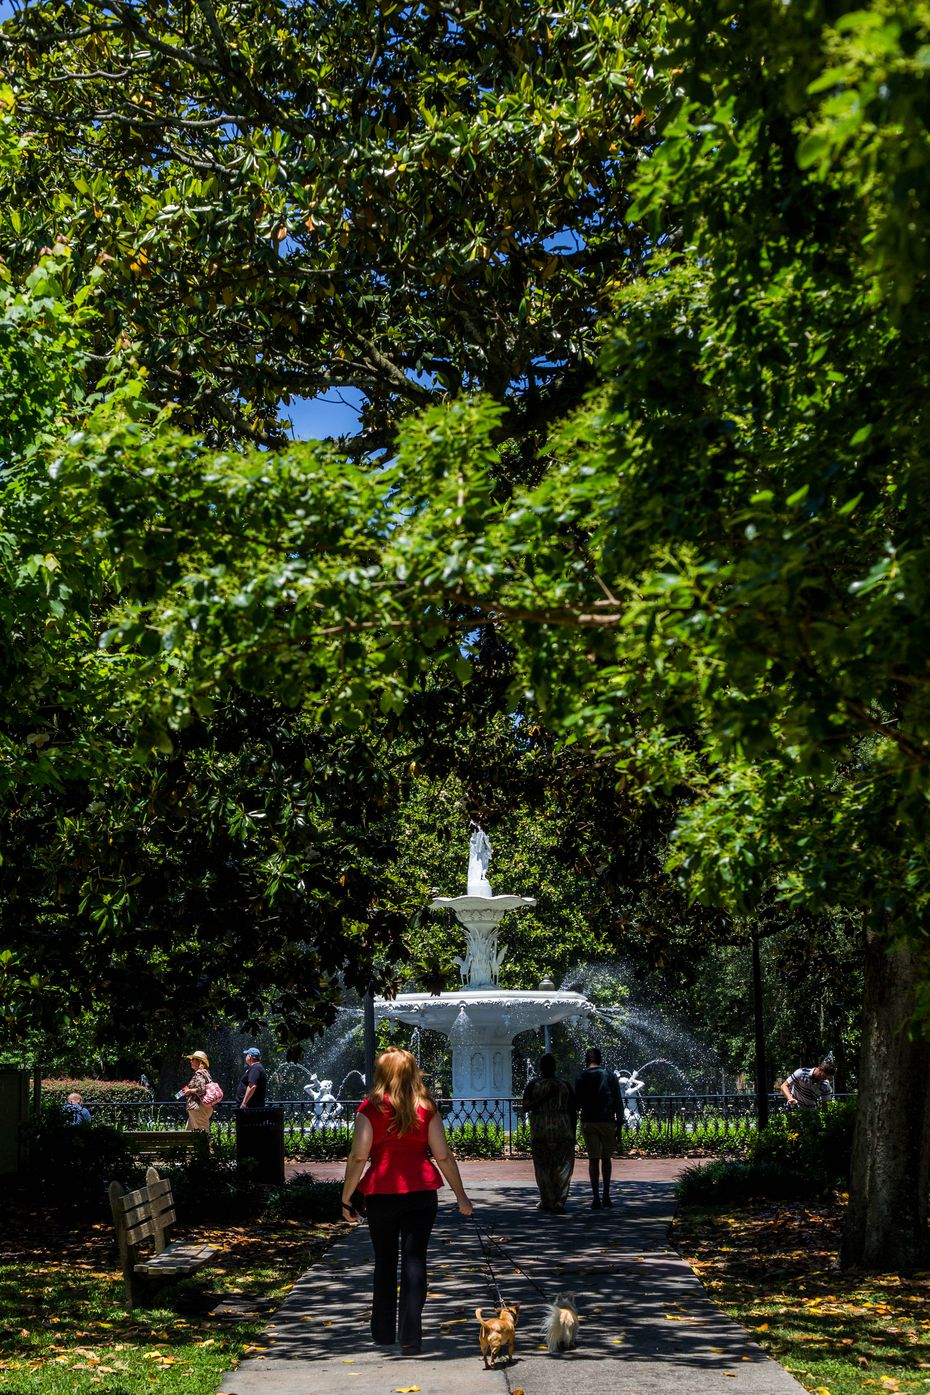 Forsyth Park, with its colossal white fountain, is among Savannah's loveliest public spaces.